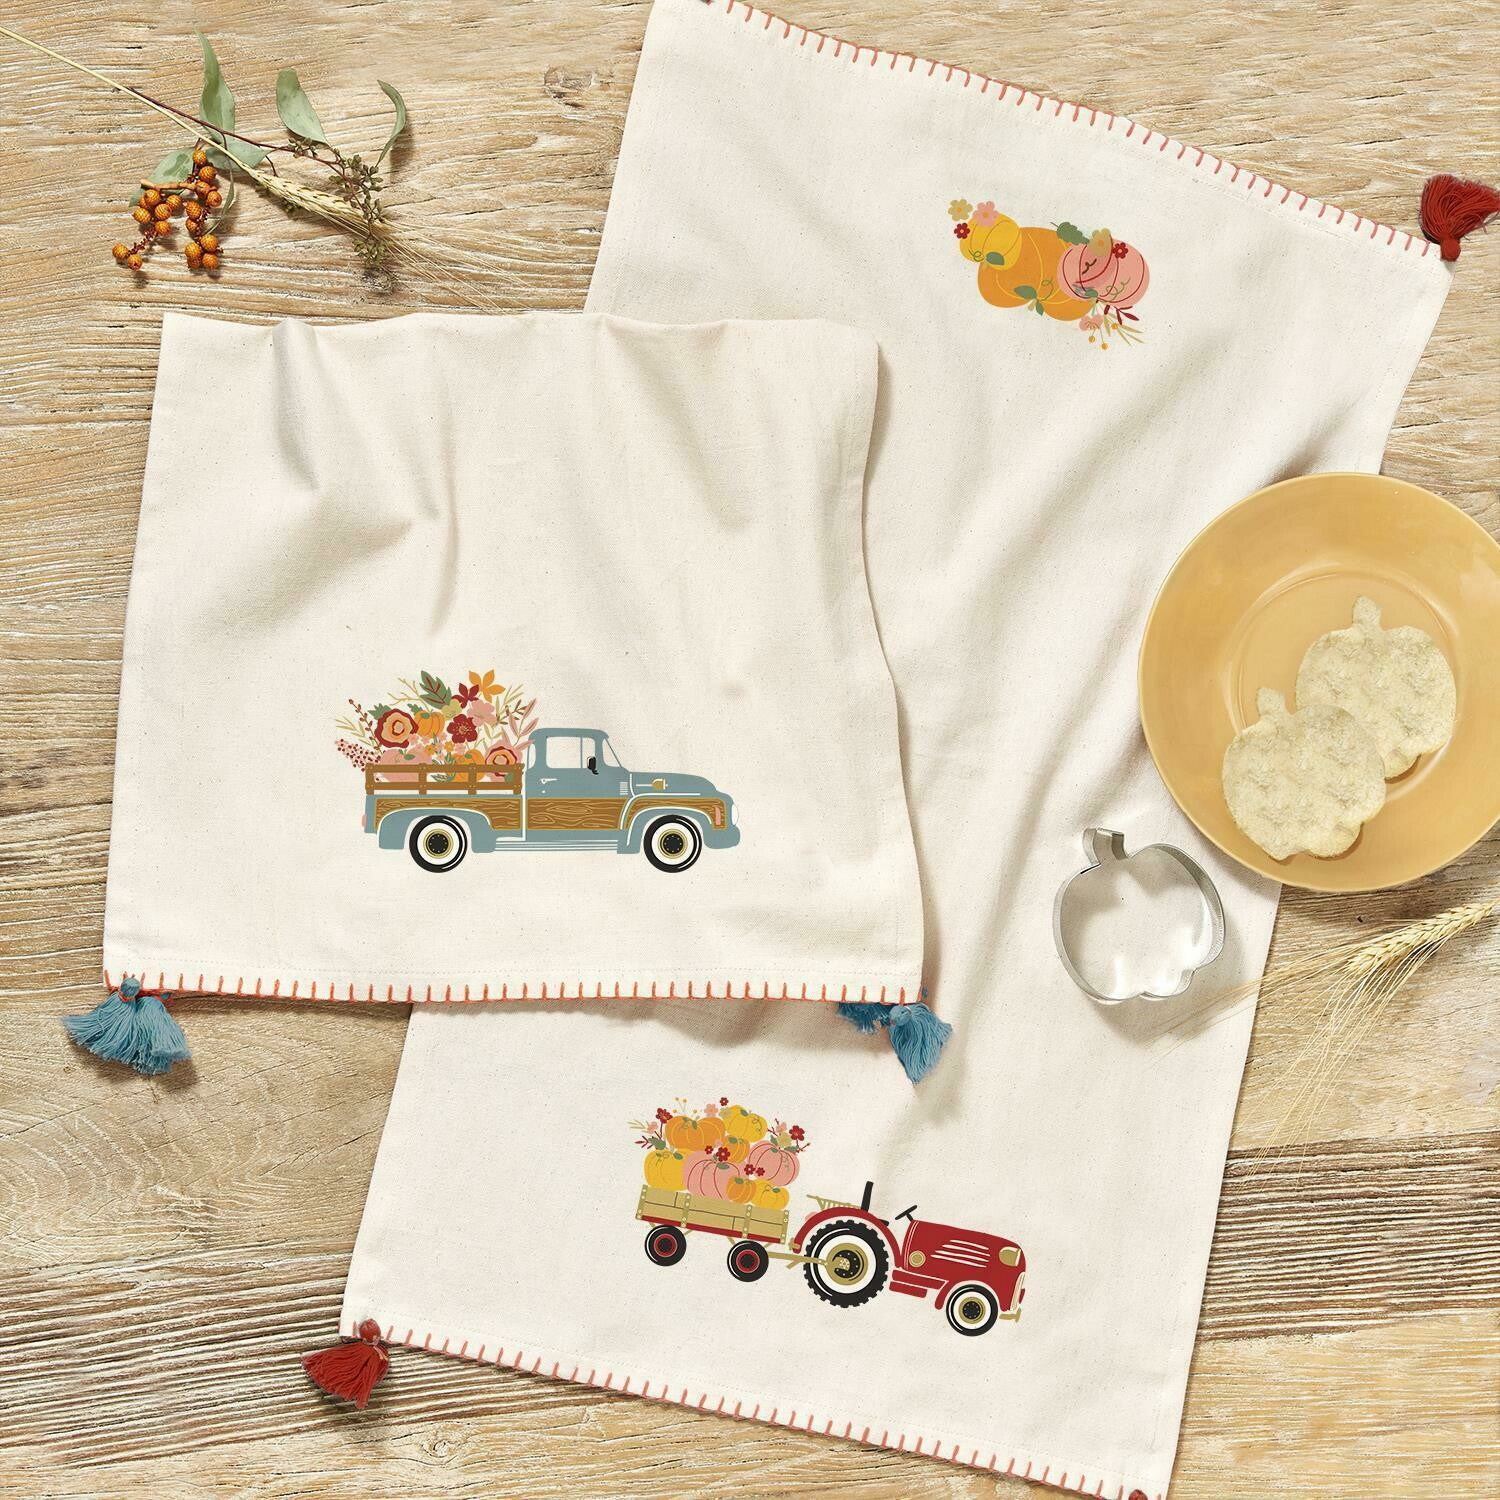 Dish Towel & Cookie Cutter Set